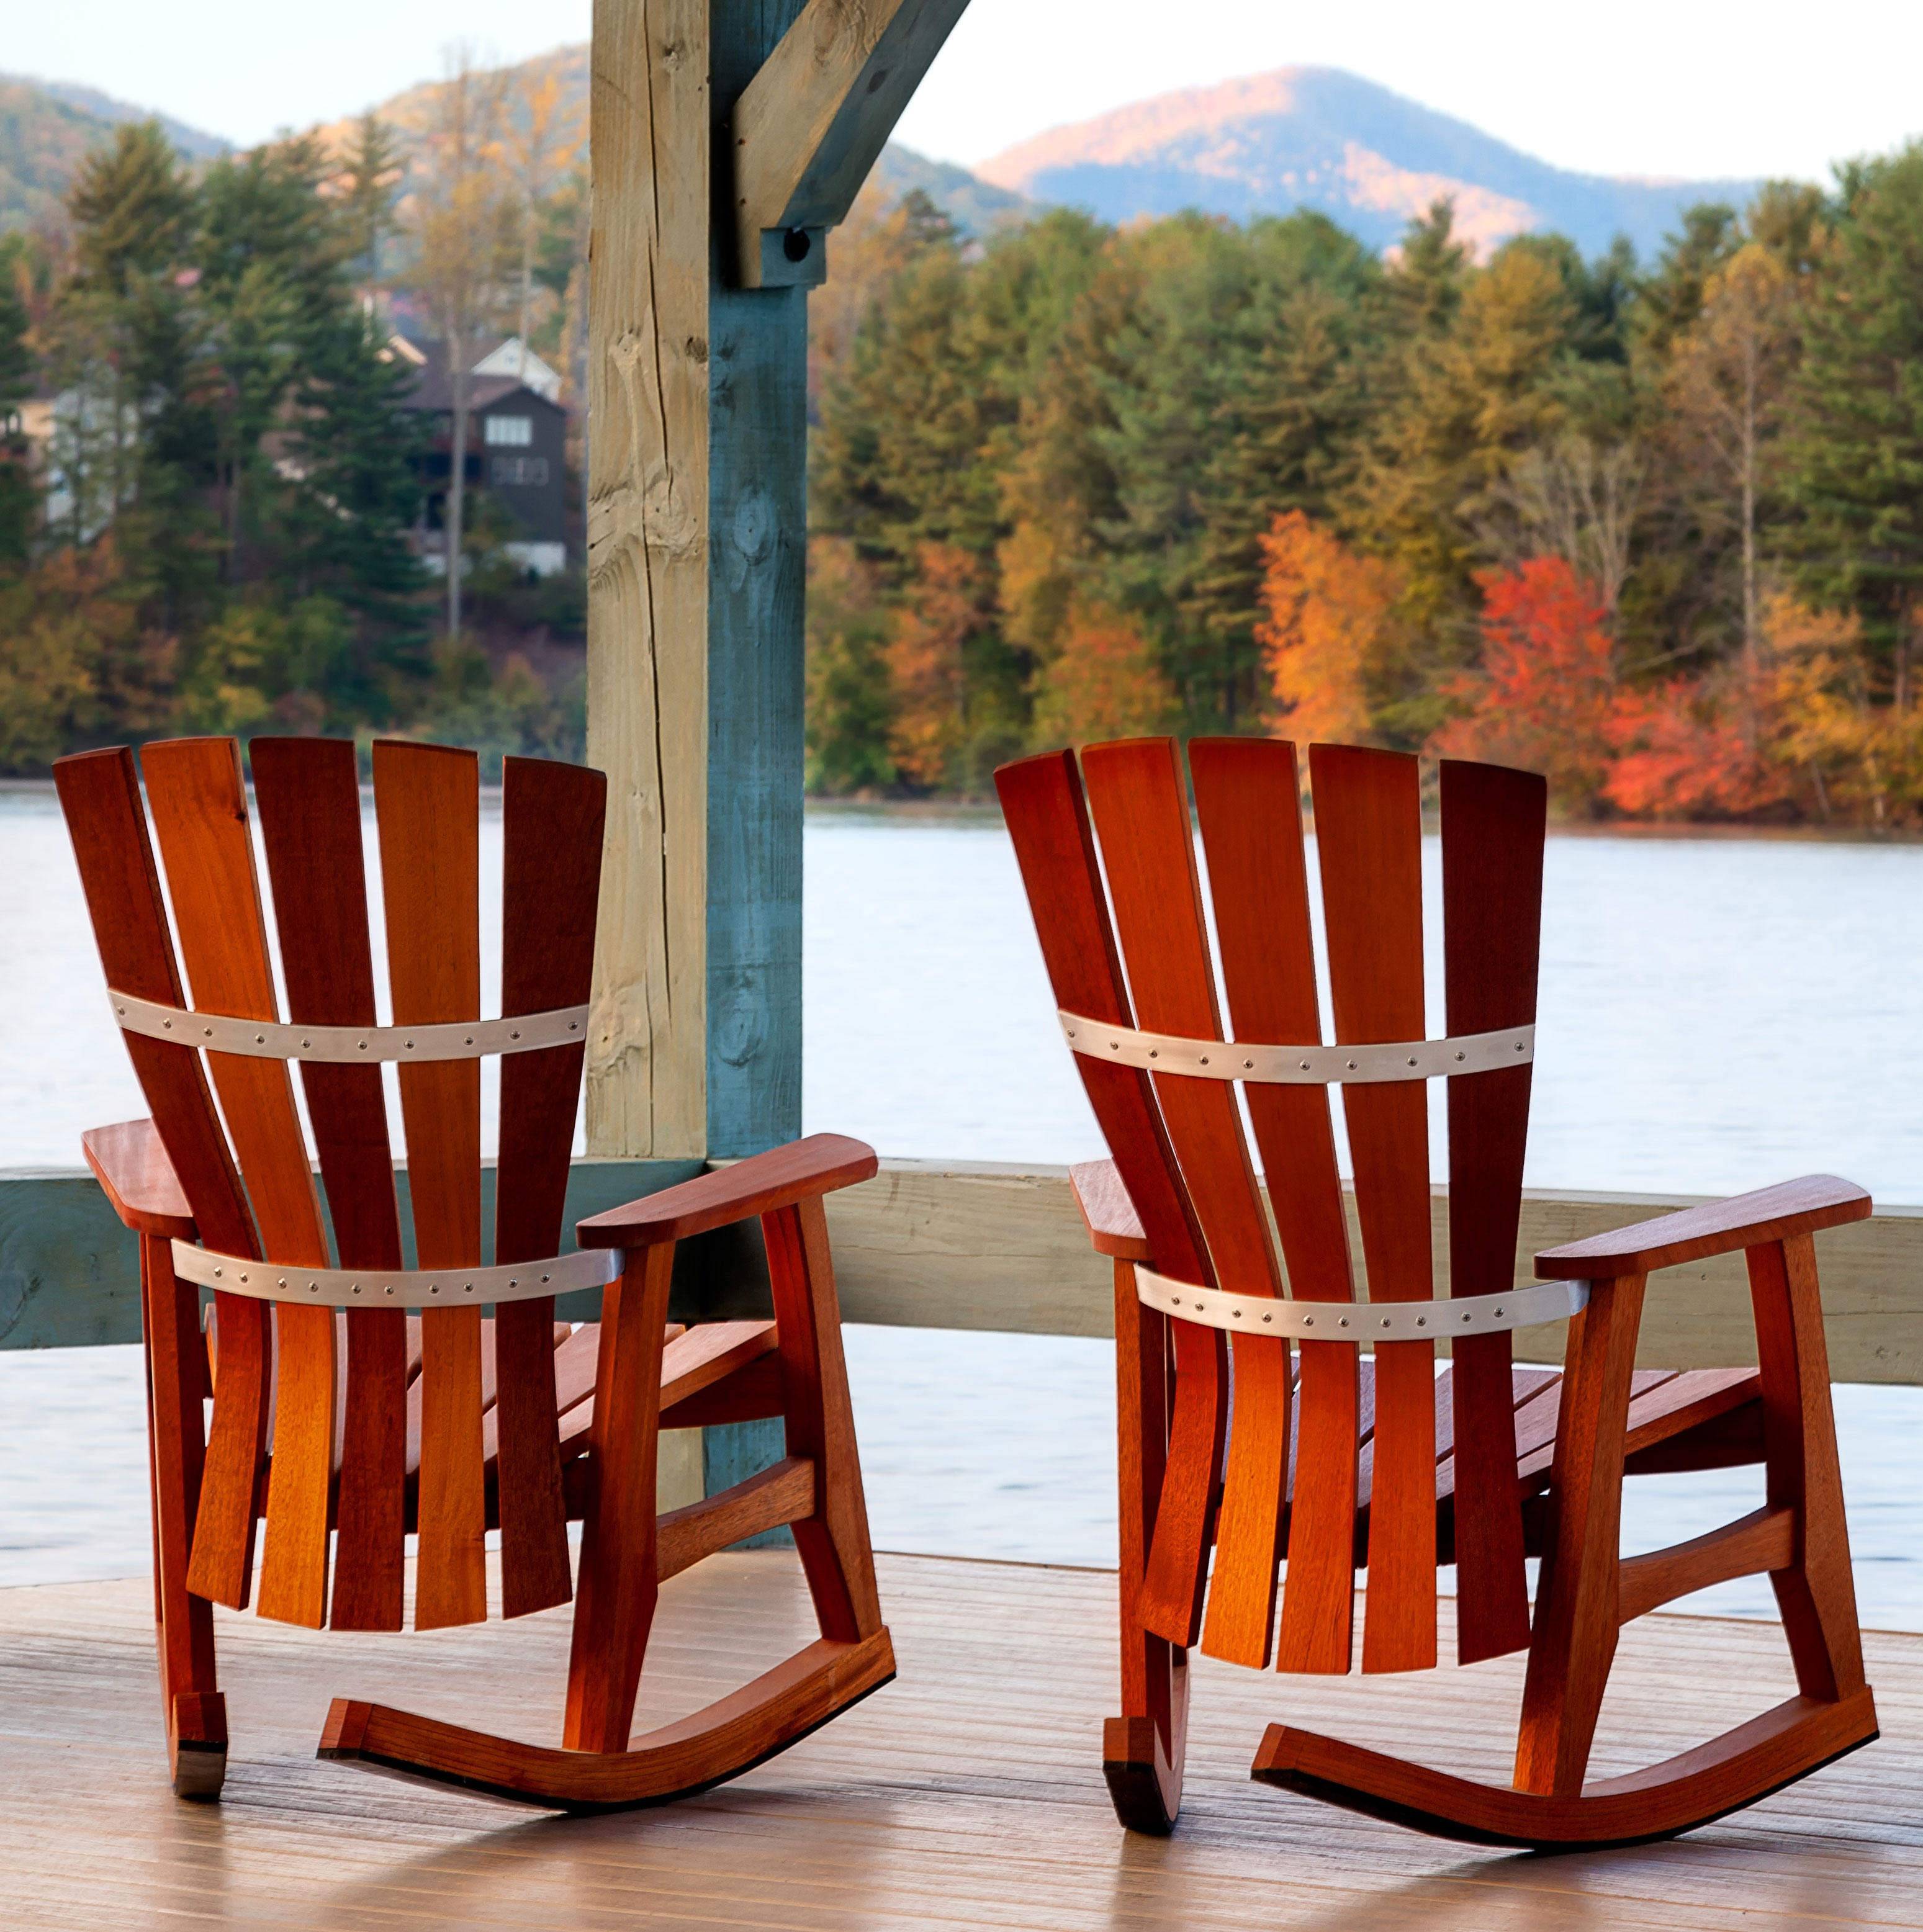 Patio Furniture Rocking Chair Fibreglass Iron And Birch Material Regarding Outside Rocking Chair Sets (View 11 of 15)